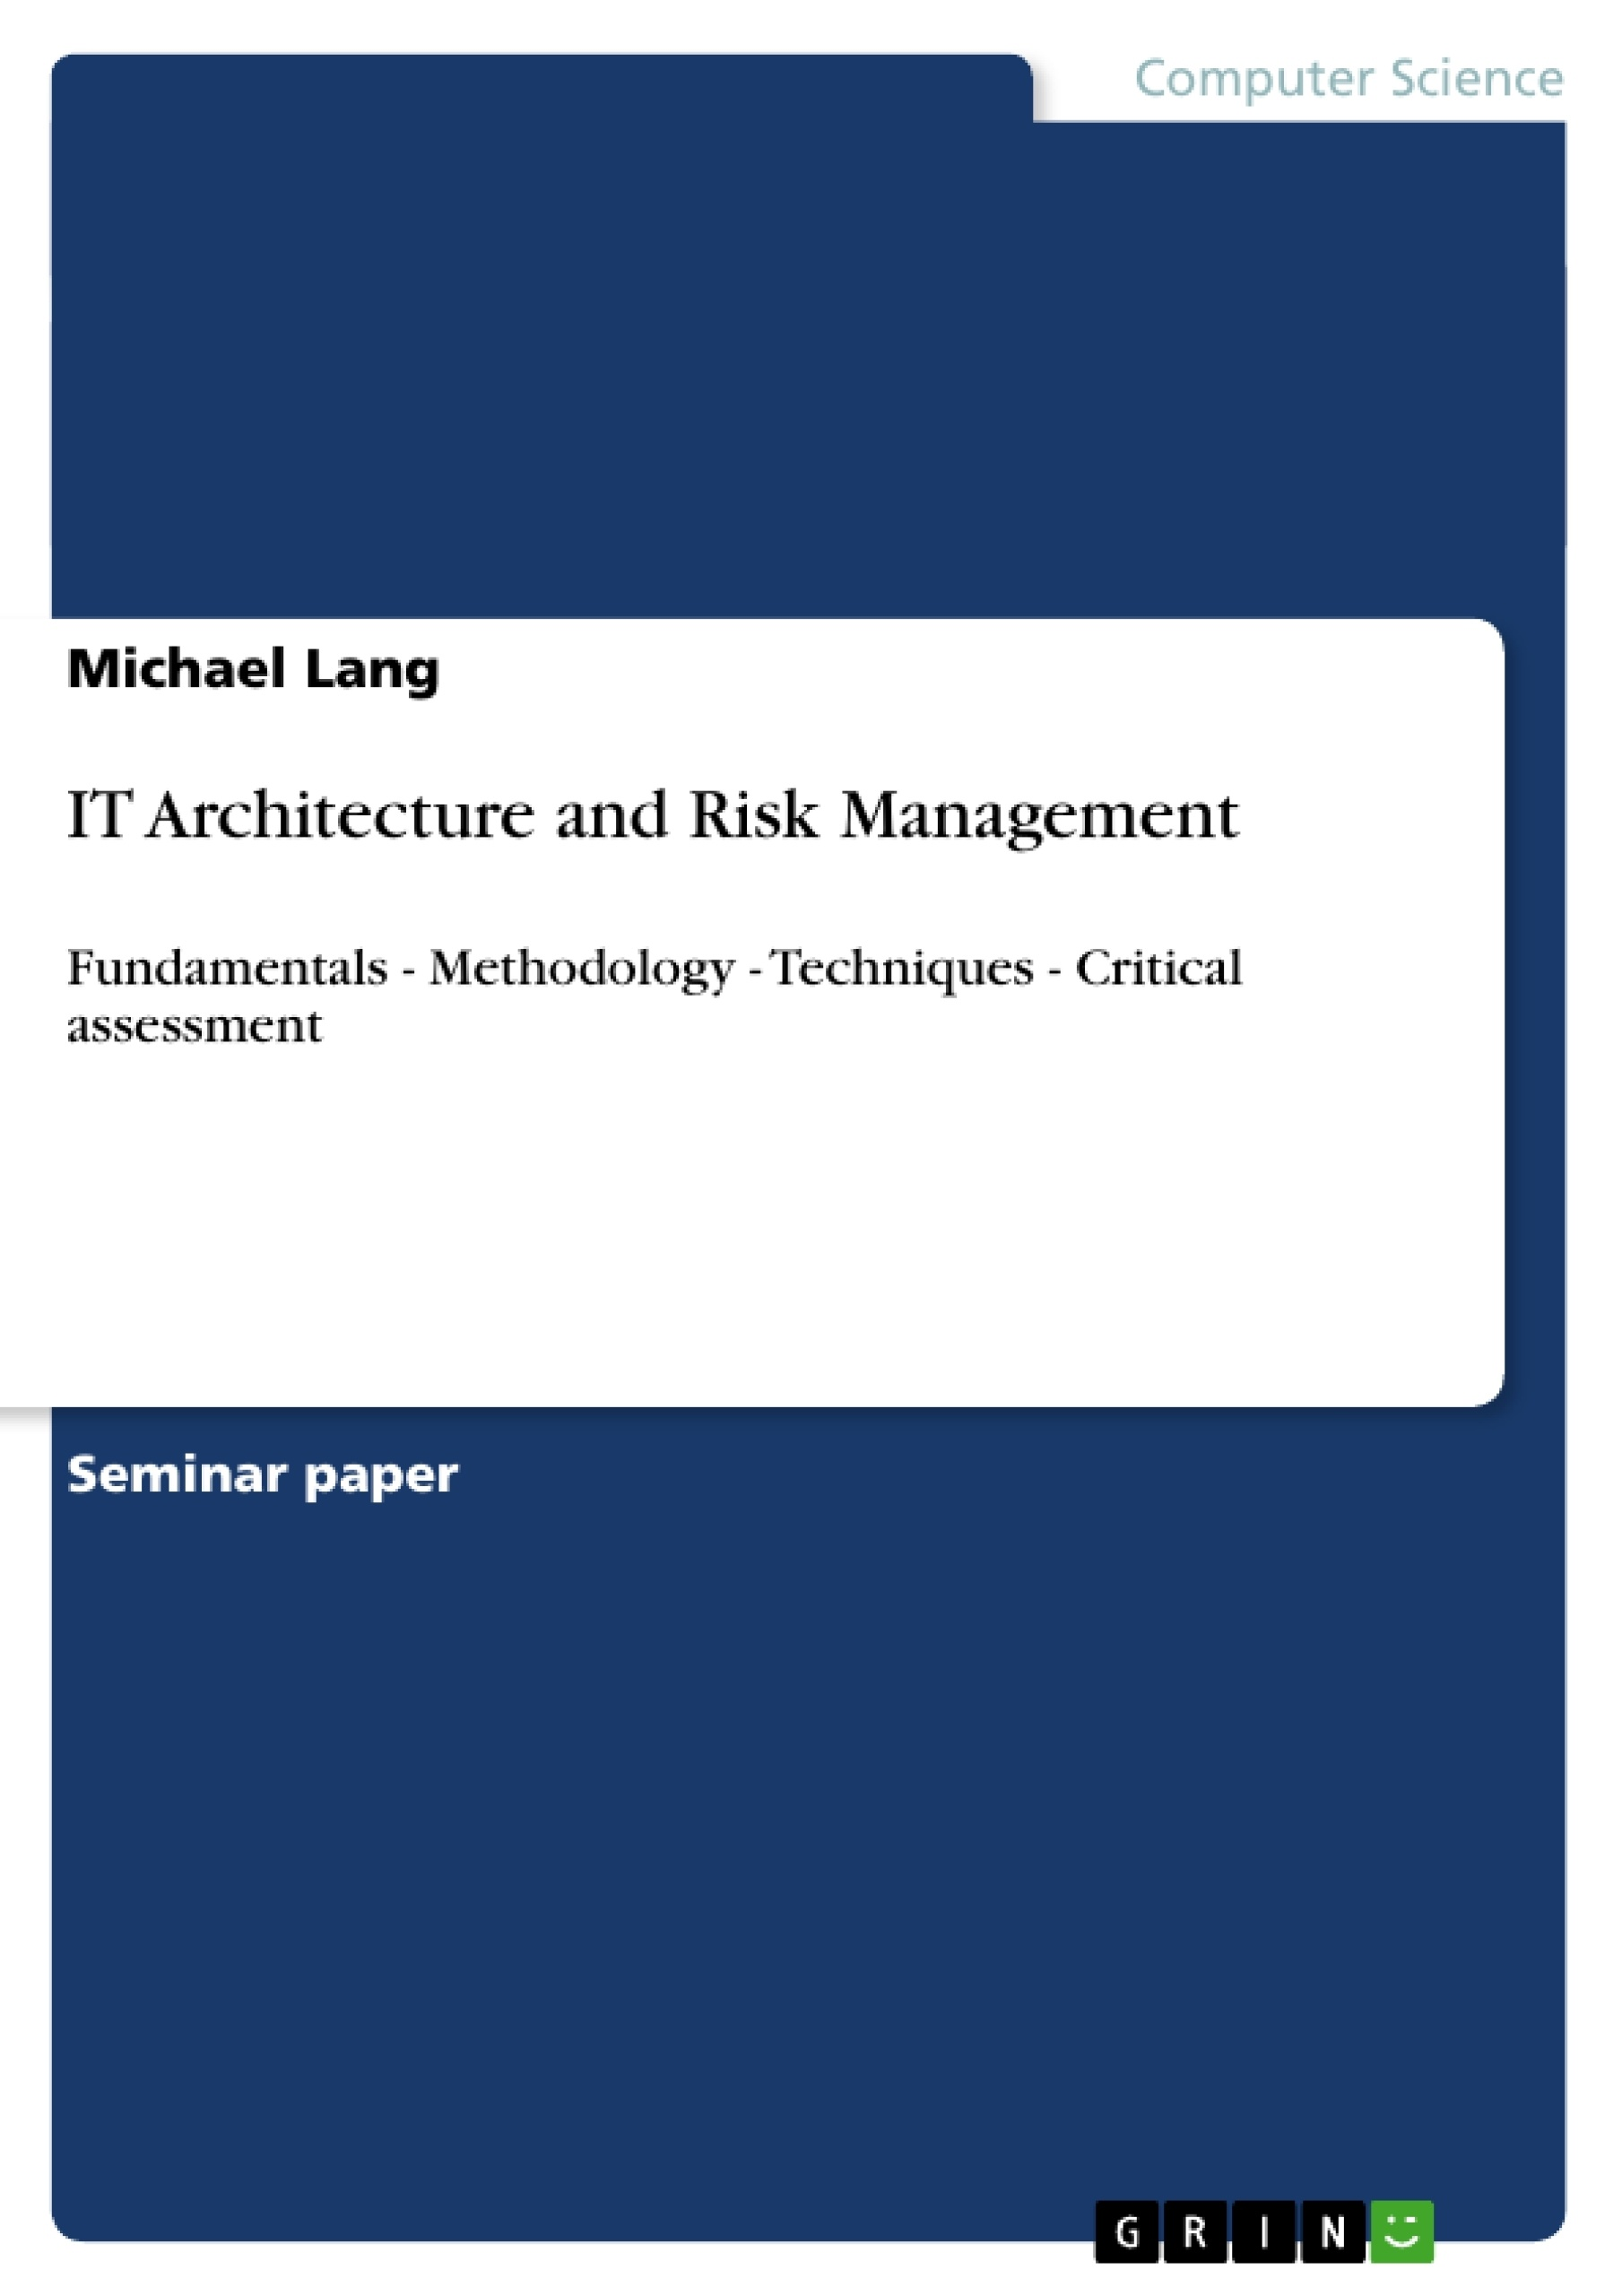 Title: IT Architecture and Risk Management